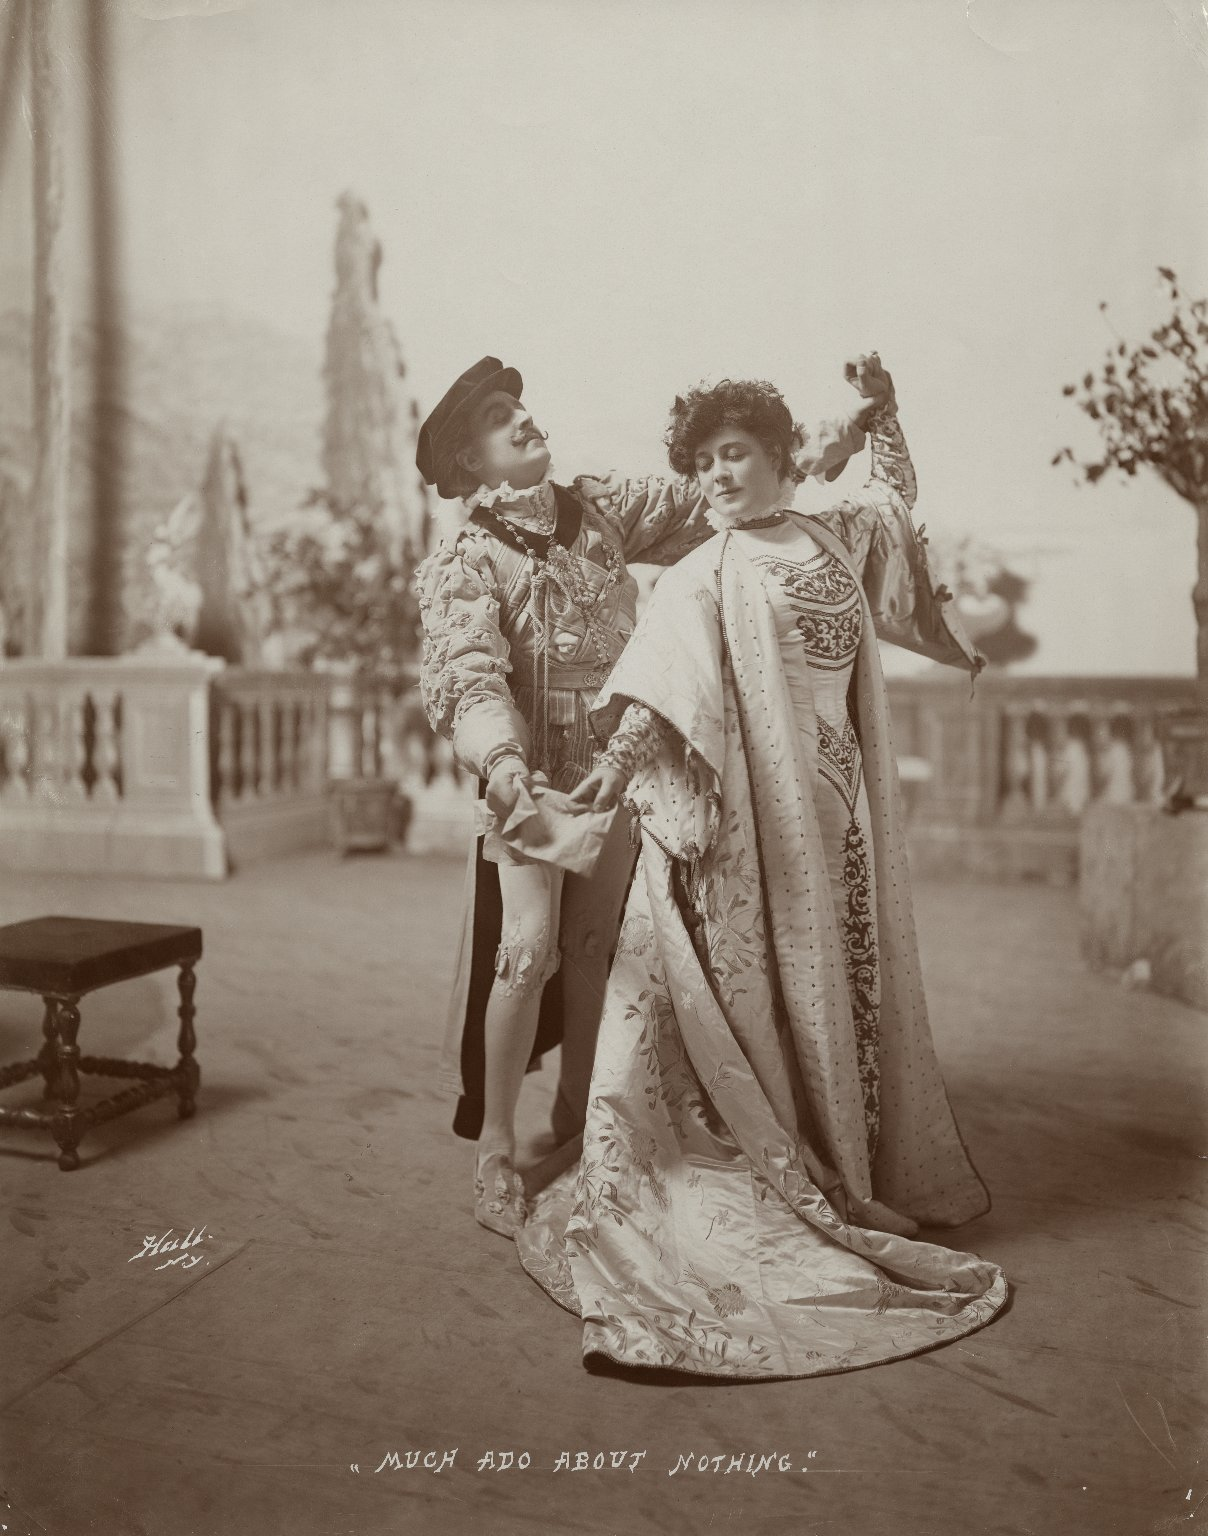 [4 photographs of a production of] Much ado about nothing [starring E.H. Sothern and Julia Marlowe] [graphic] / Hall.